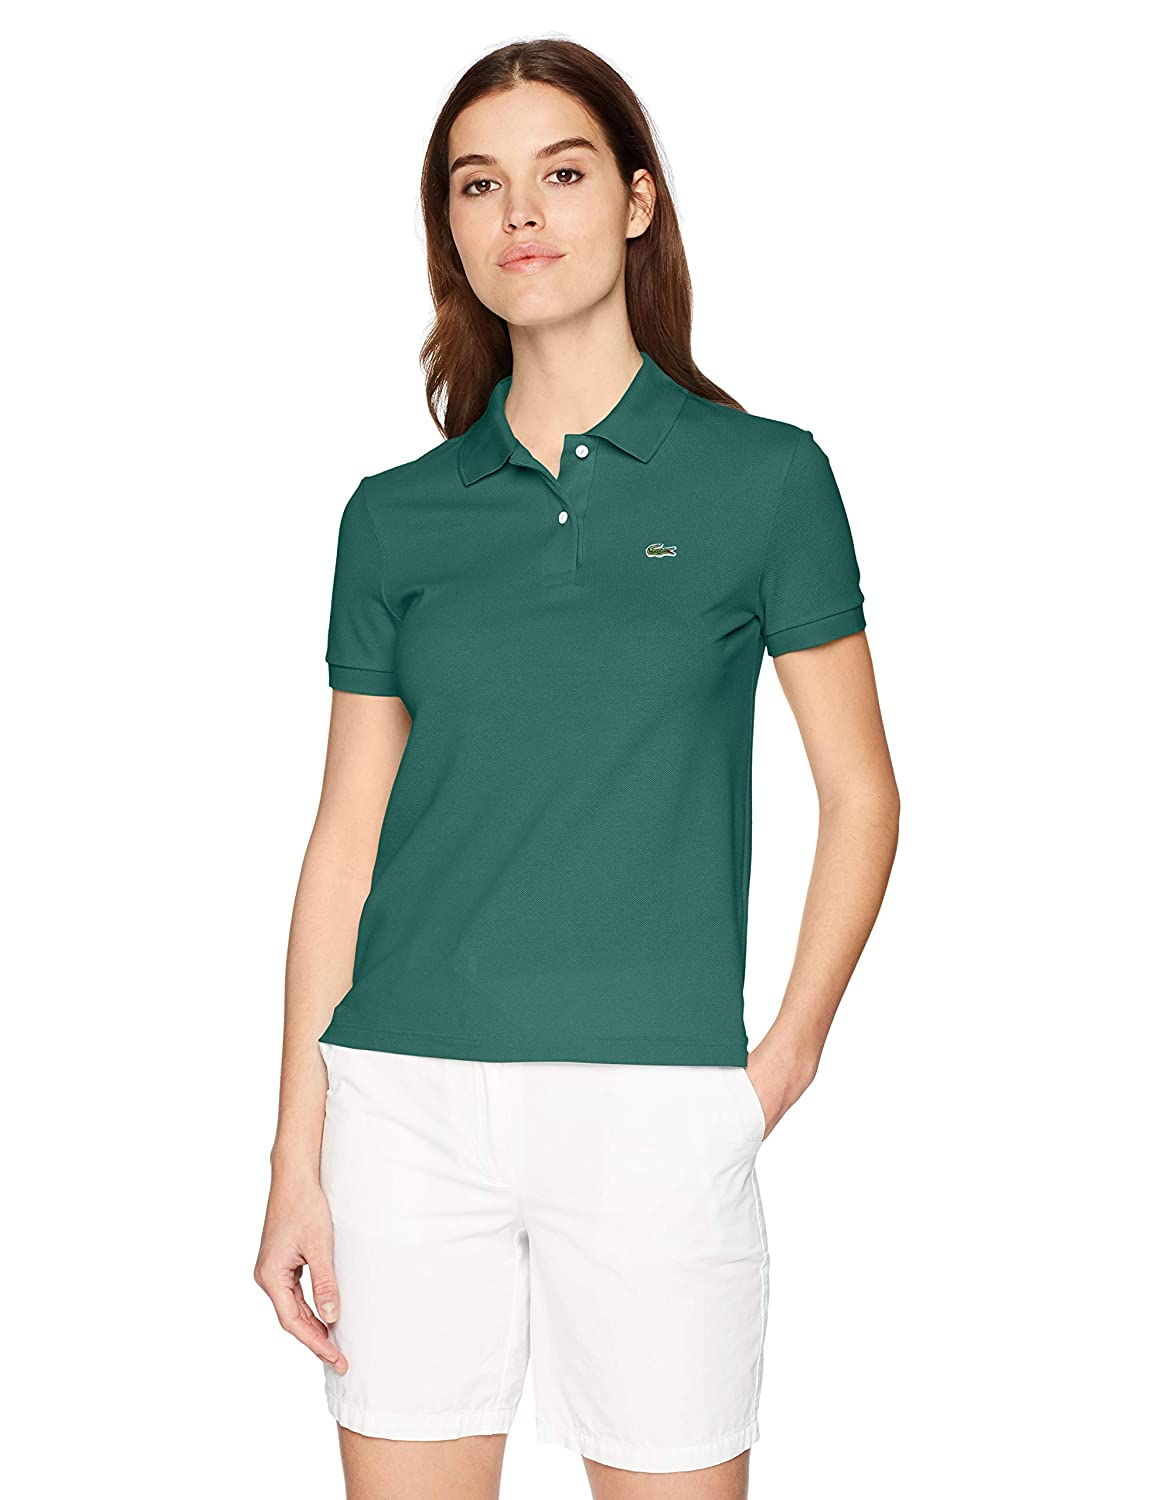 2295a3fd1f Lacoste Women s Classic Fit Short Sleeve Soft Cotton Petit Piqué Polo at  Amazon Women s Clothing store